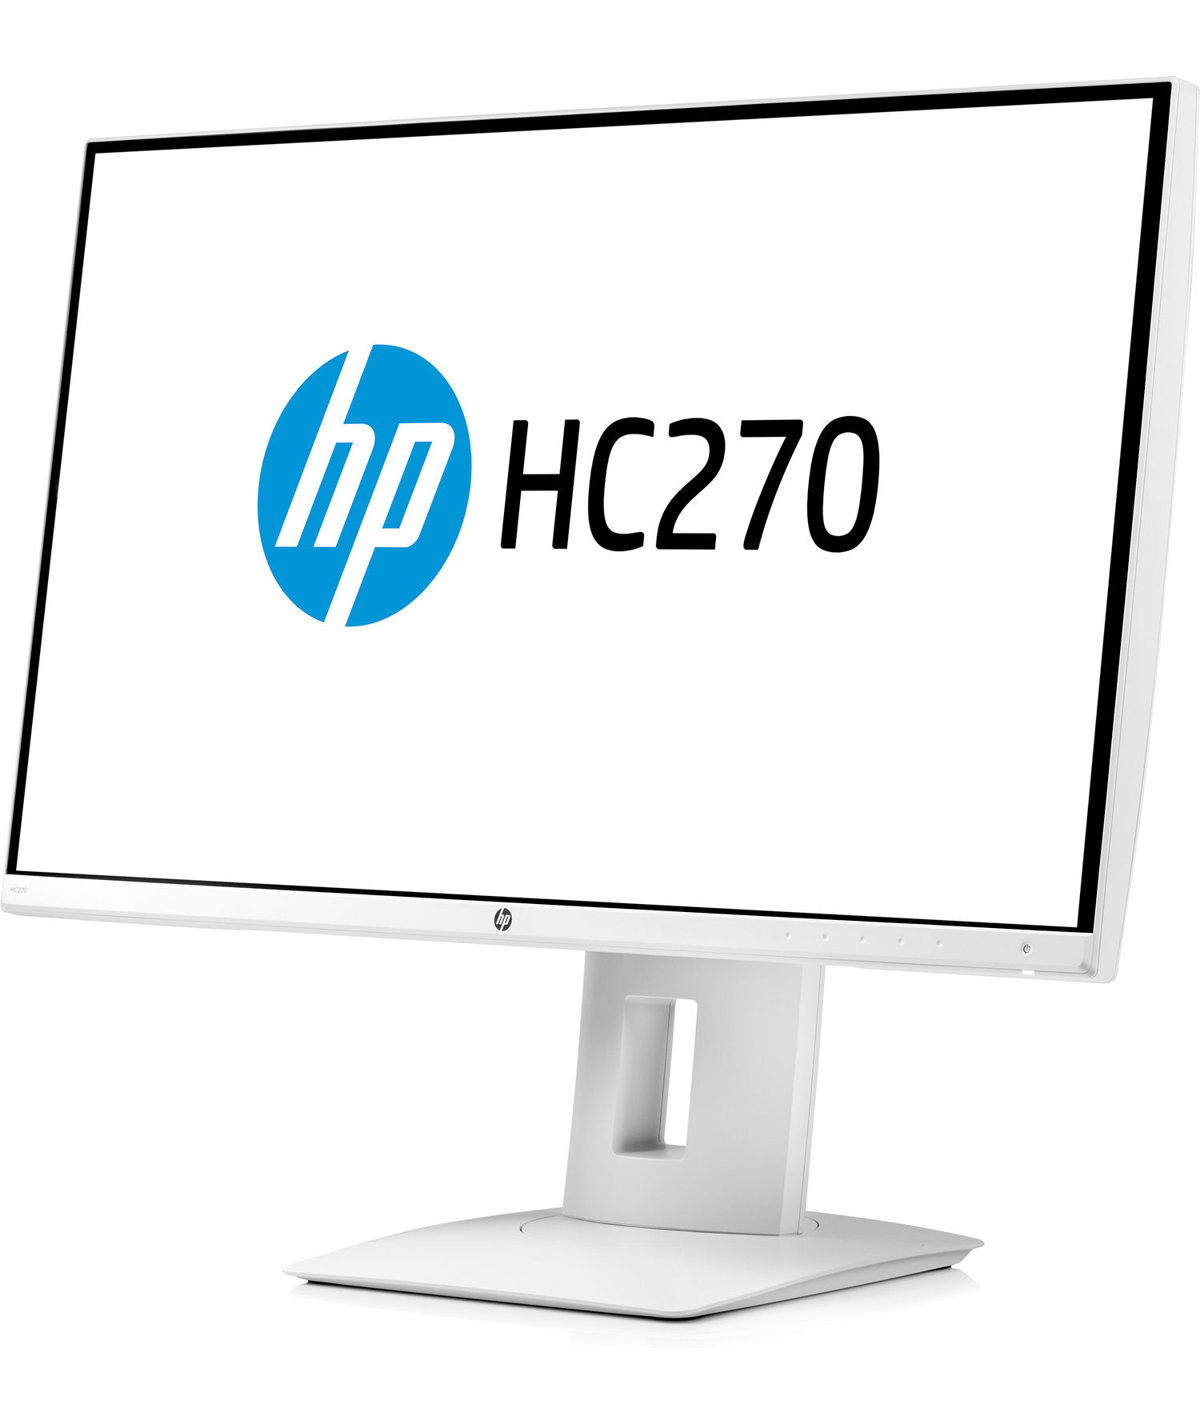 HP HC270 QHD Healthcare Edition Display